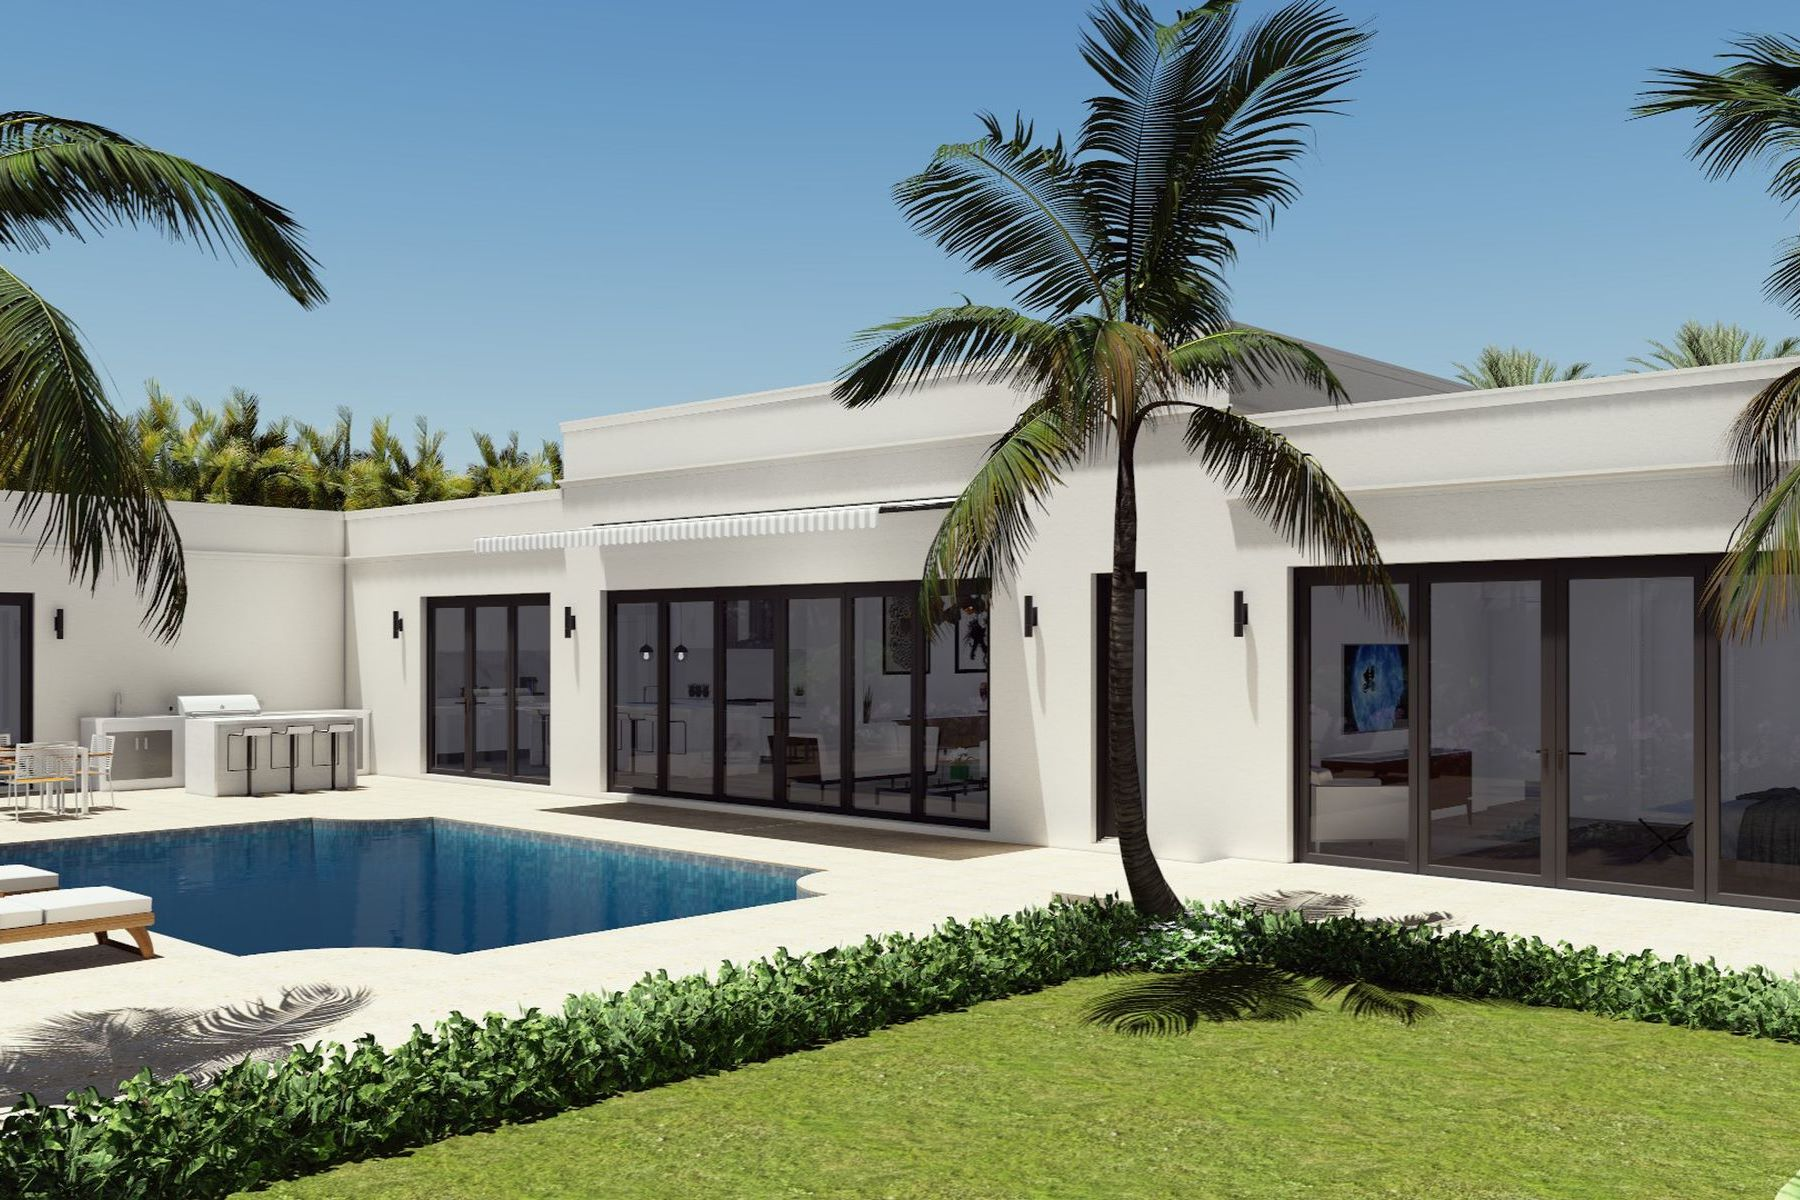 Single Family Homes for Sale at Contemporary North End 240 Sandpiper Dr Palm Beach, Florida 33480 United States